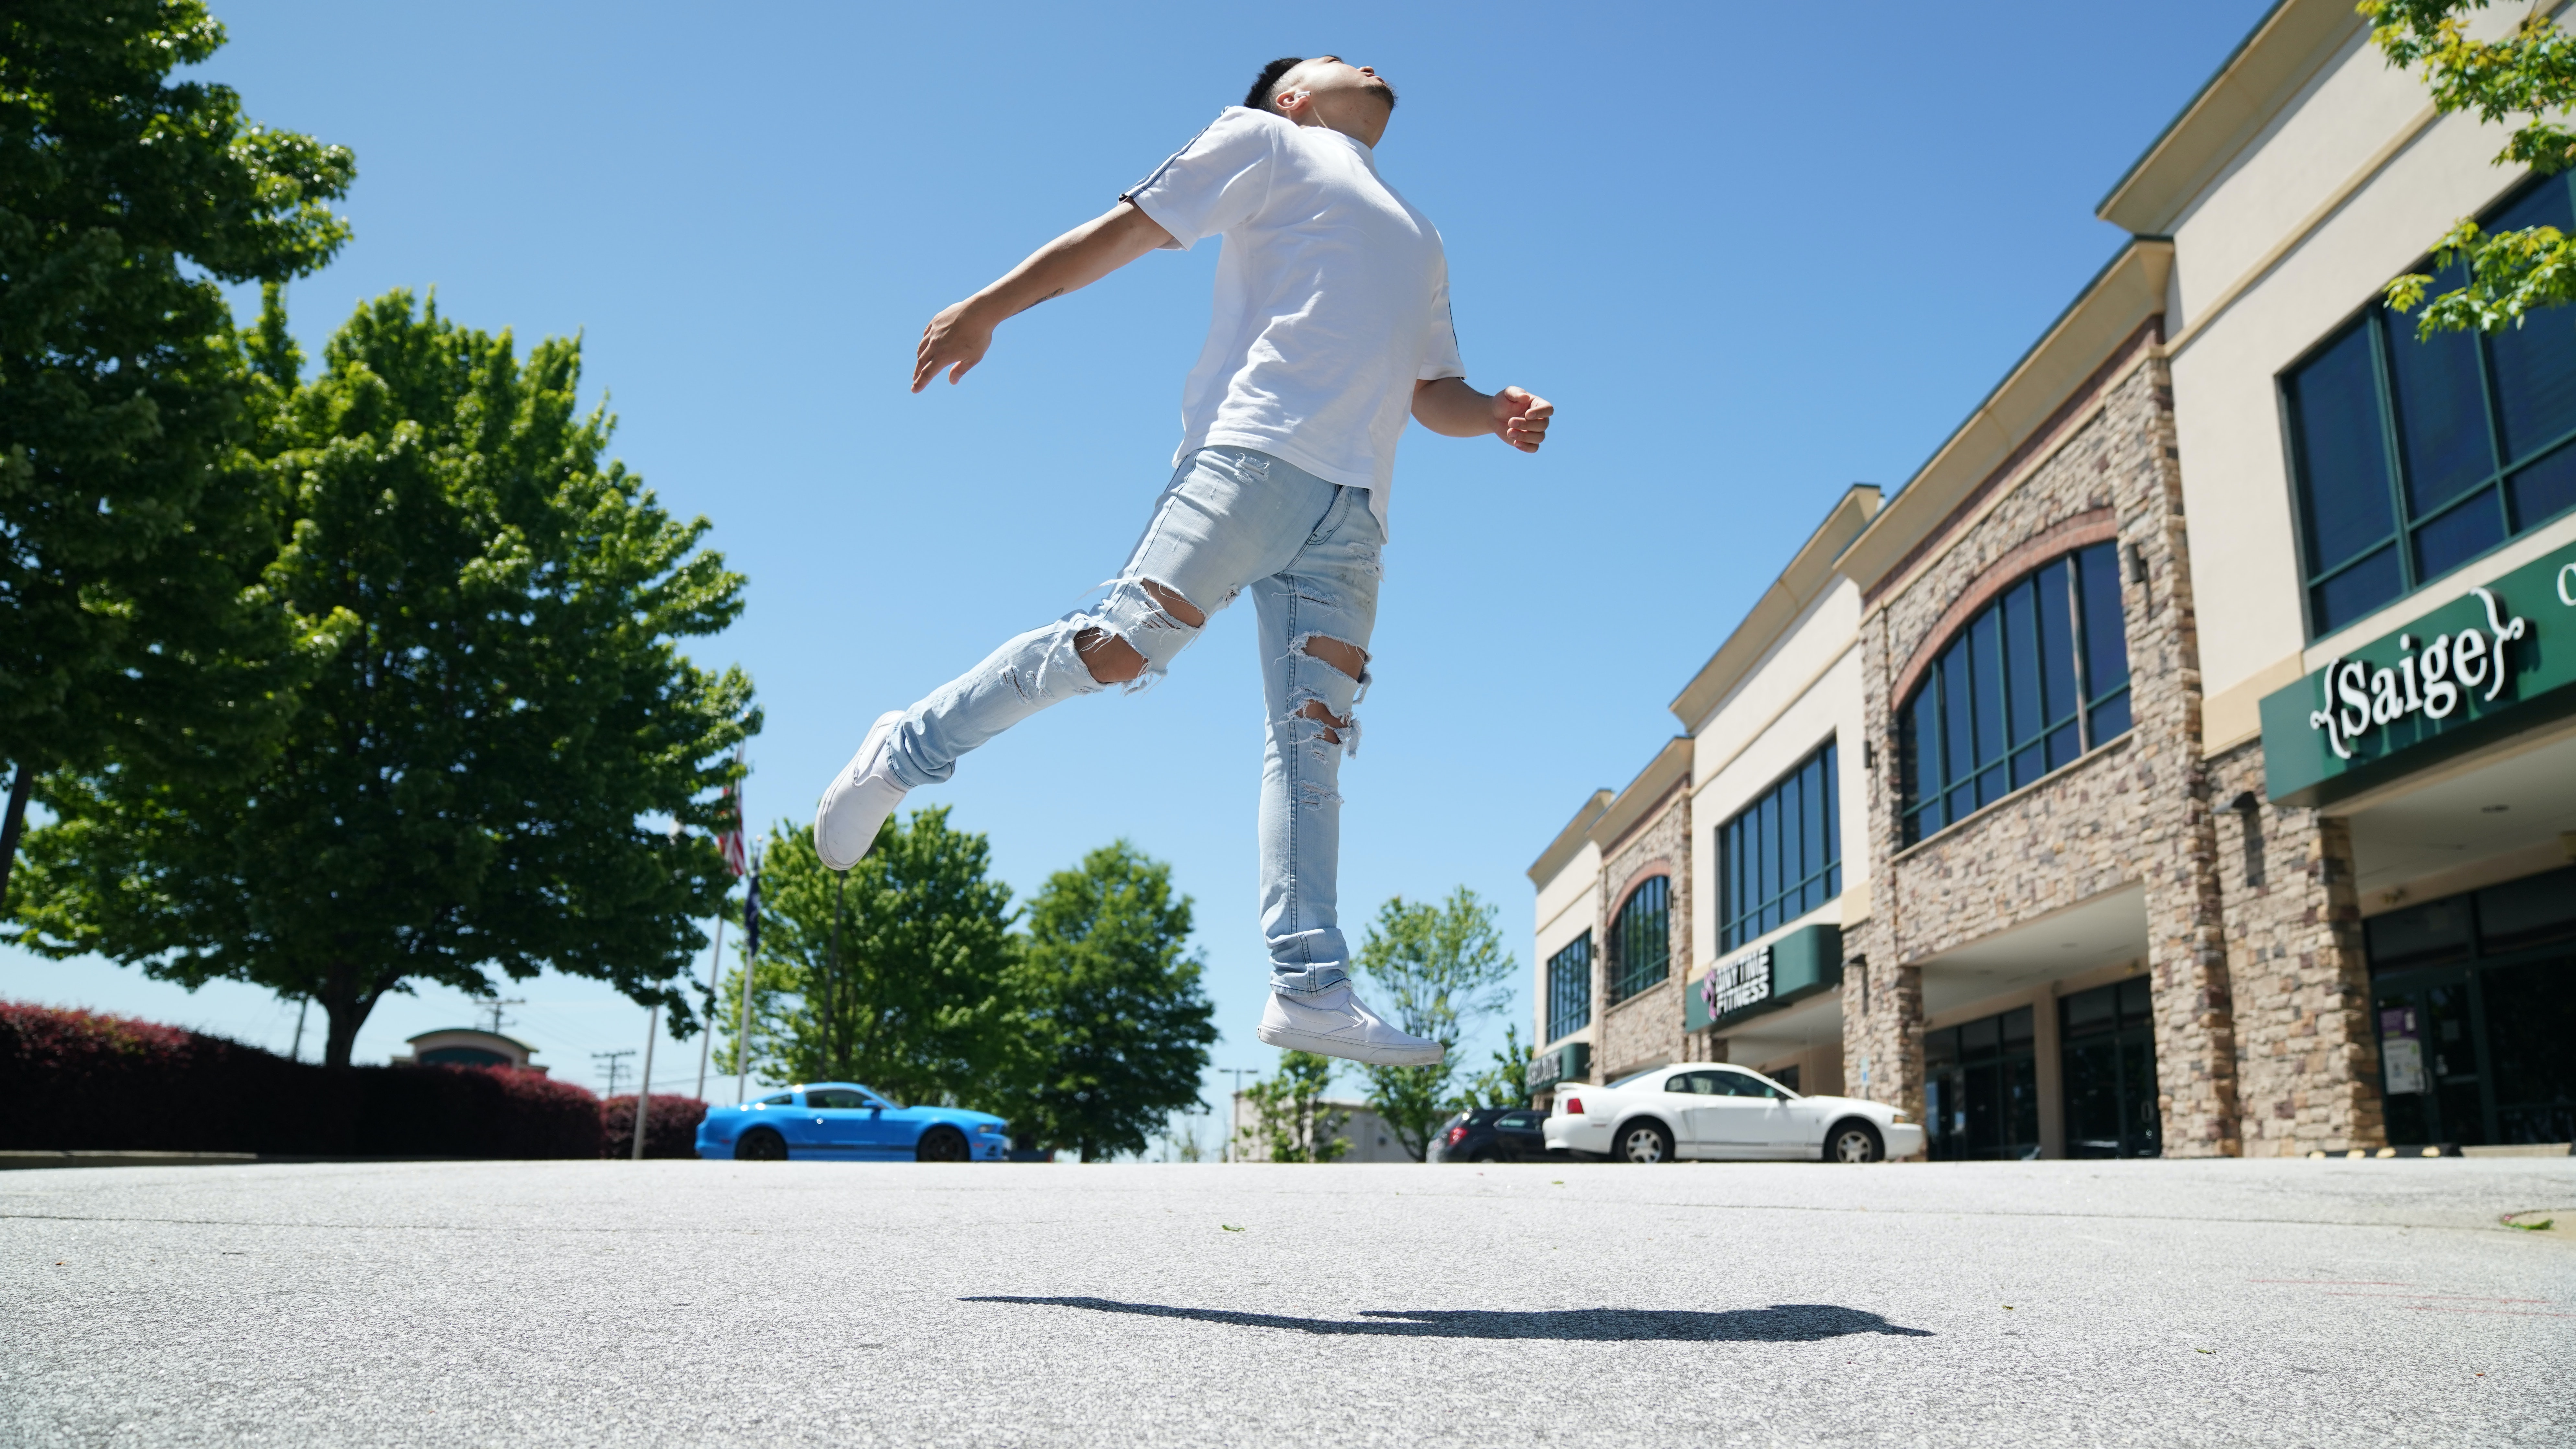 photo of man doing jumpshot